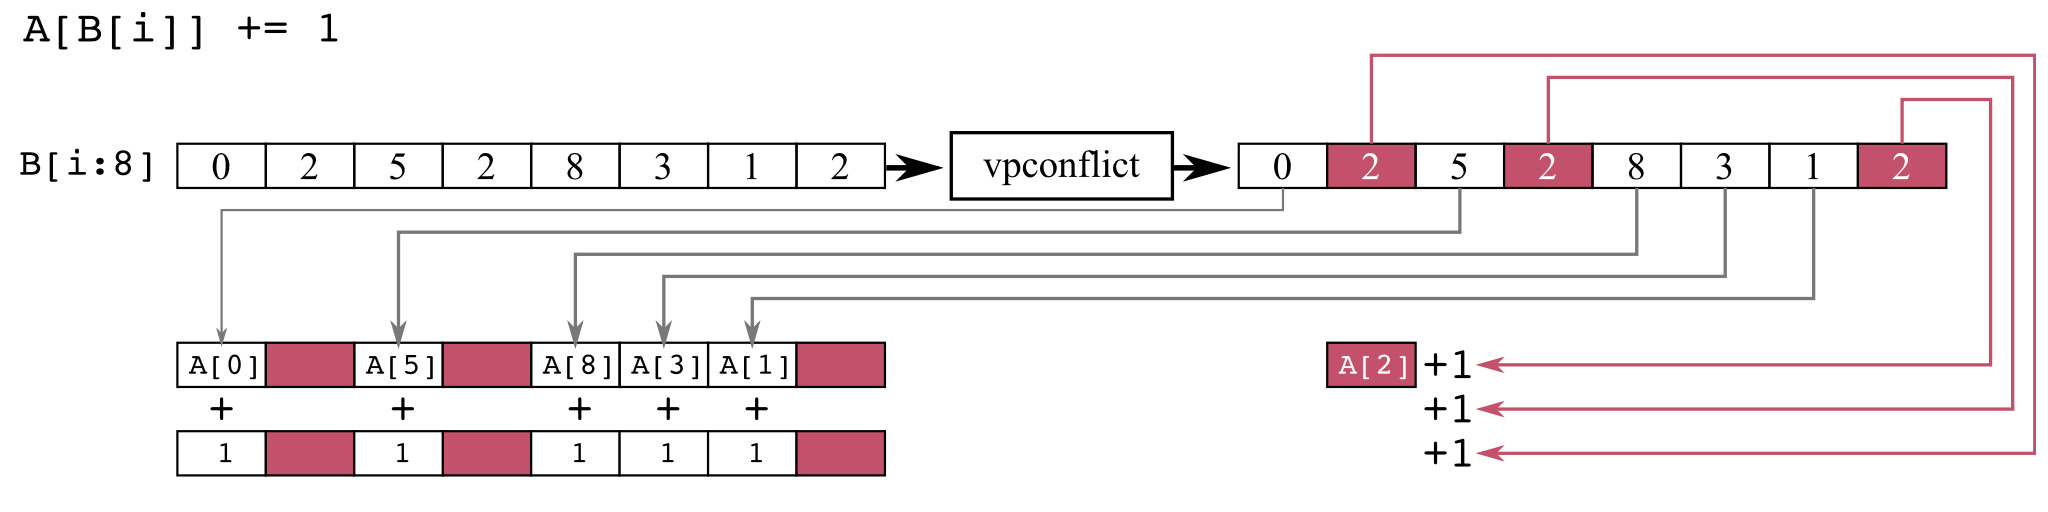 Conflict detection diagram